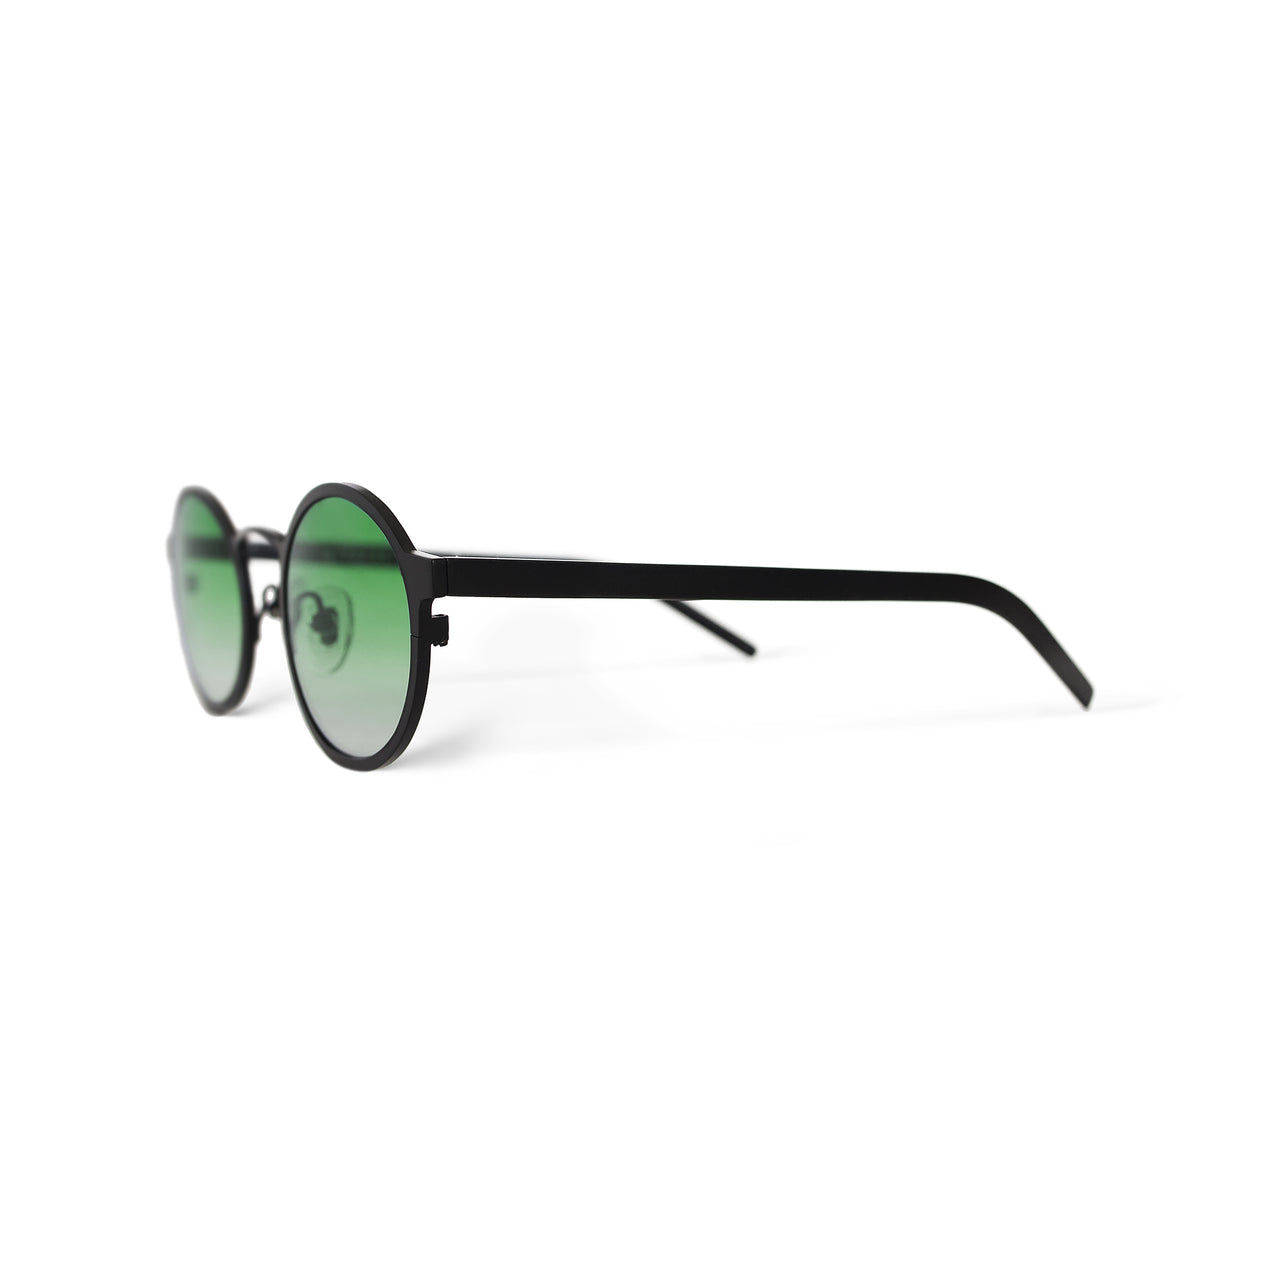 Metal. Matte Black. Jade Lens - BLYSZAK eyewear eyewear - eyewear, optical, sunglasses